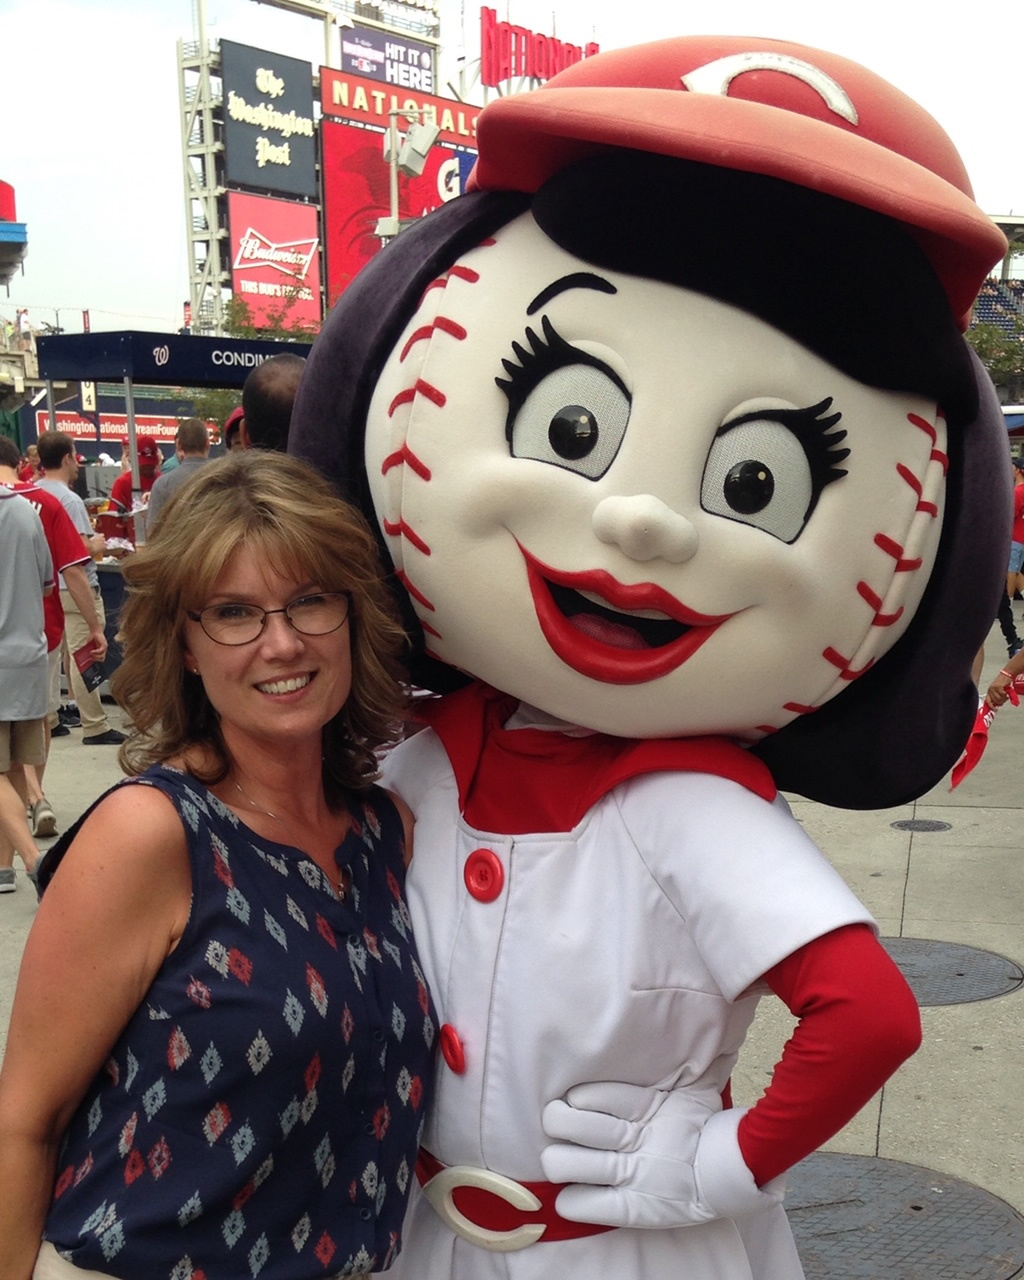 Lori Scott at Washington Nationals game